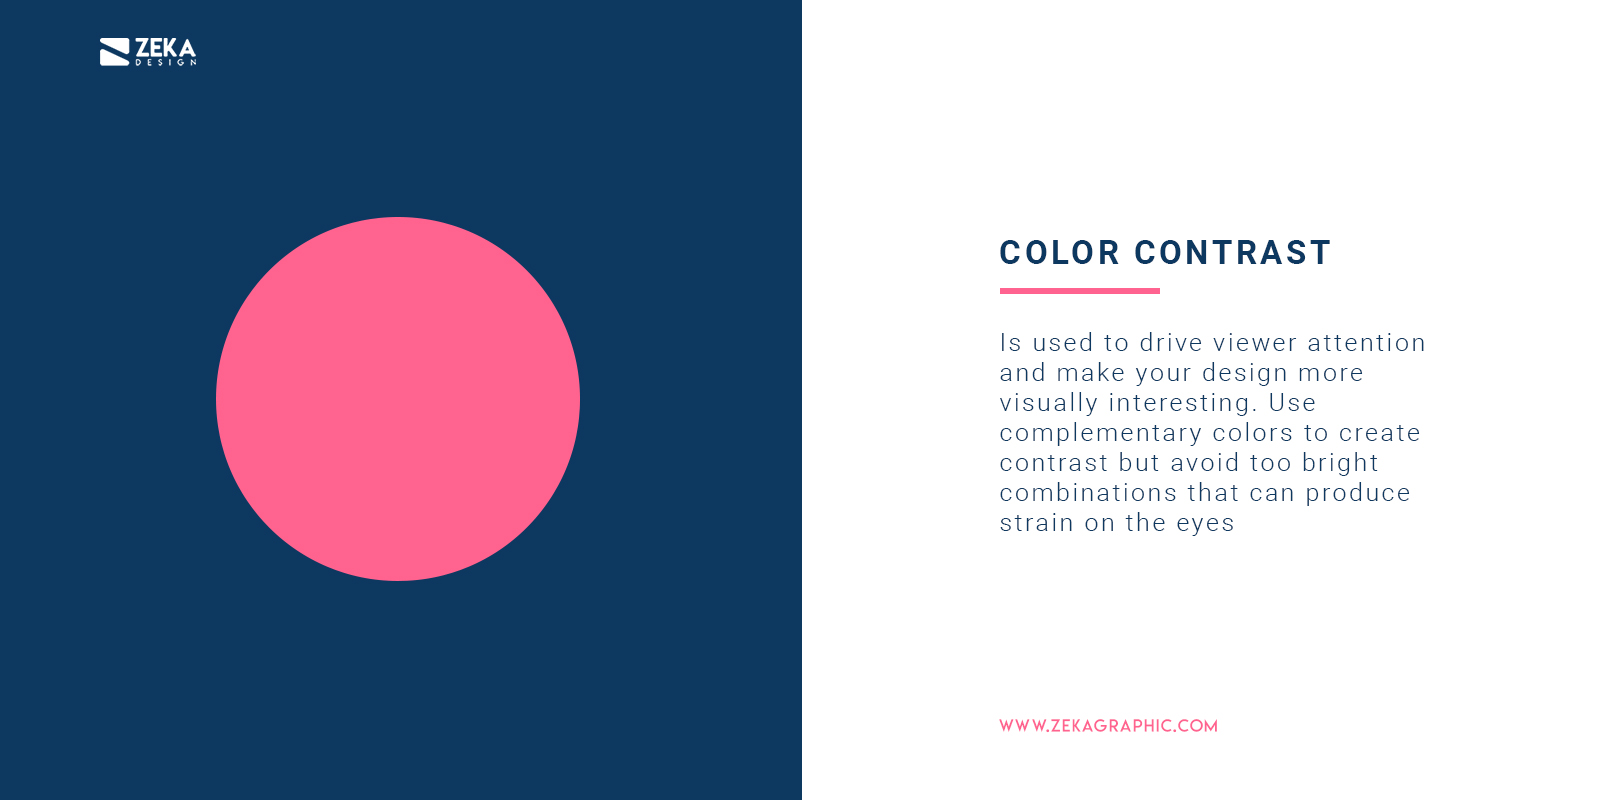 How To Use Color Contrast in Graphic Design